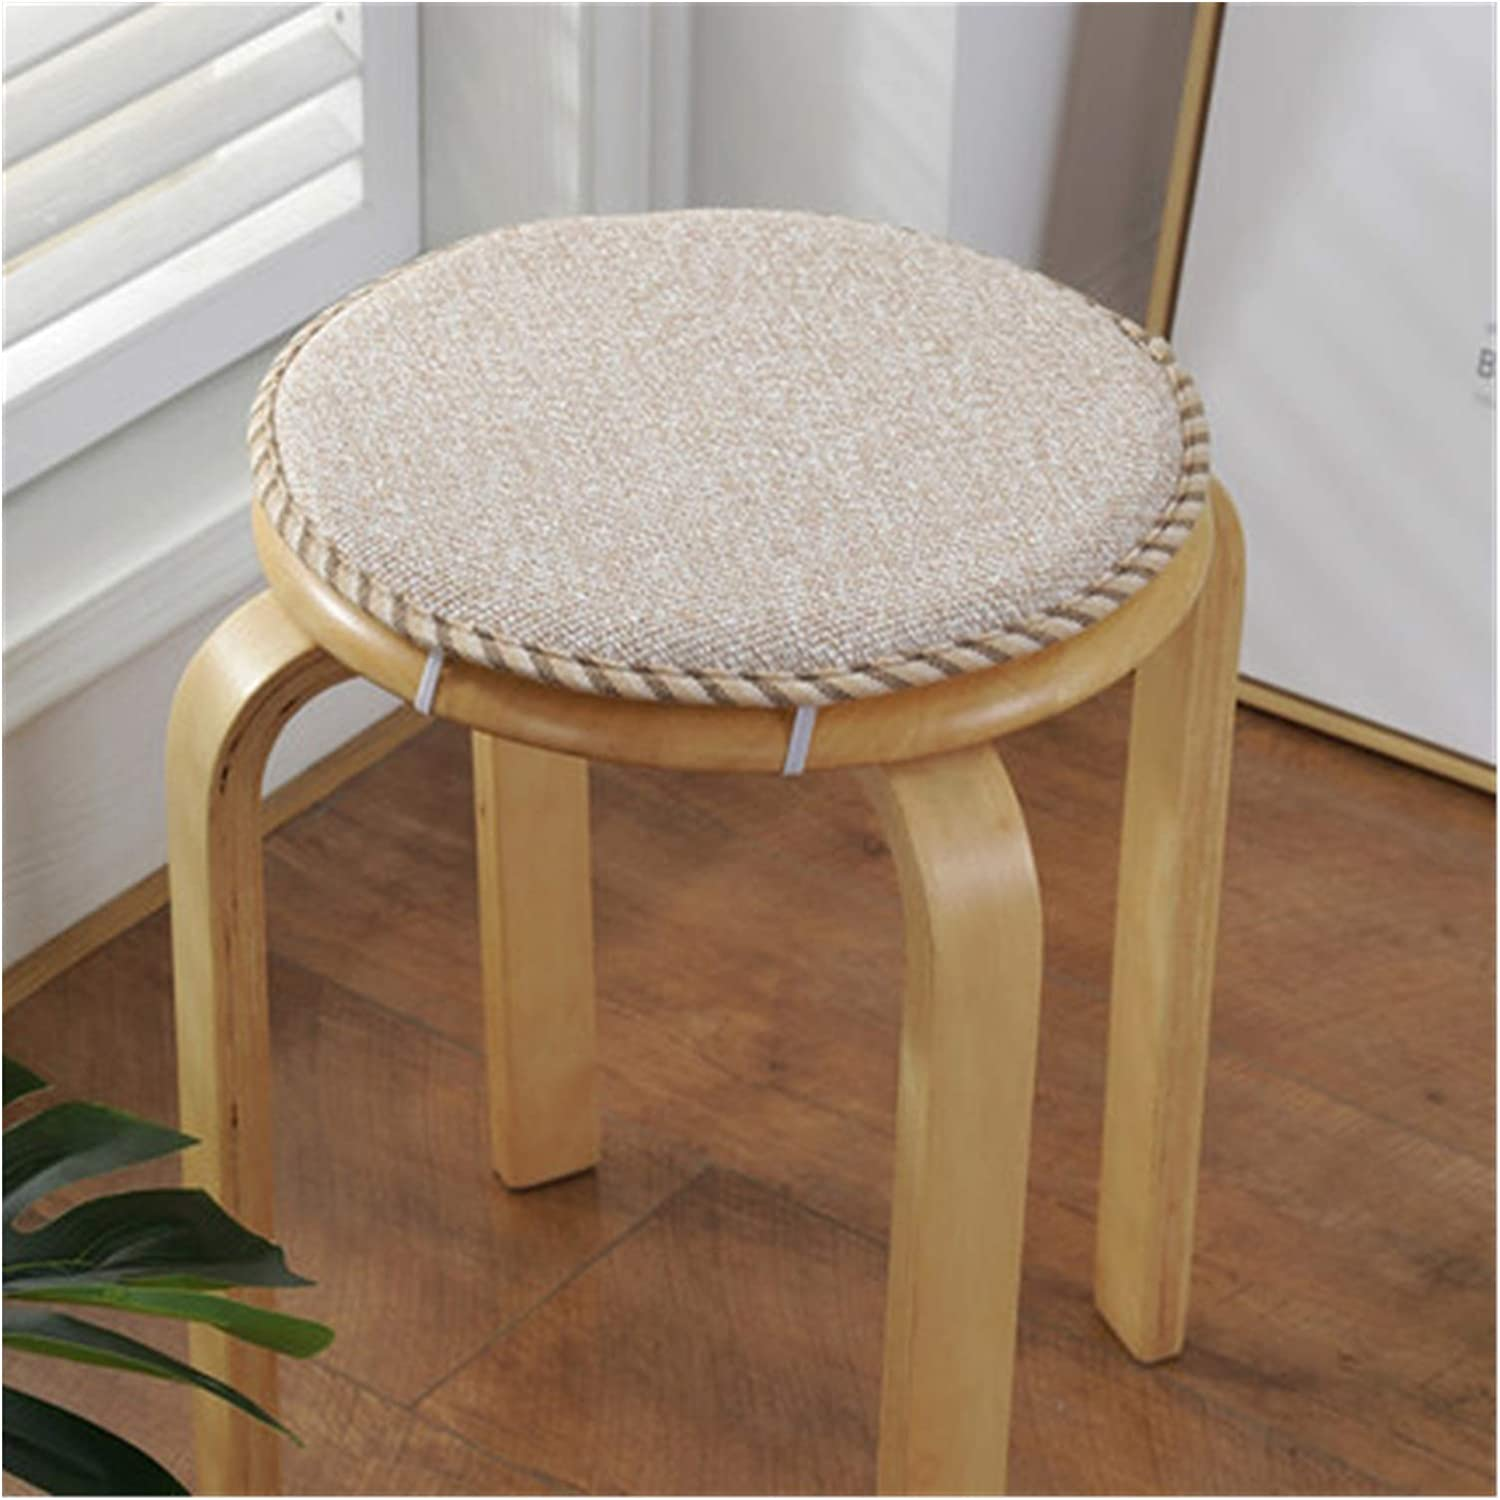 2021 spring and summer new ZCPCS Winter Round Chair Cushion Foam Ho 70% OFF Outlet Super Seat Soft